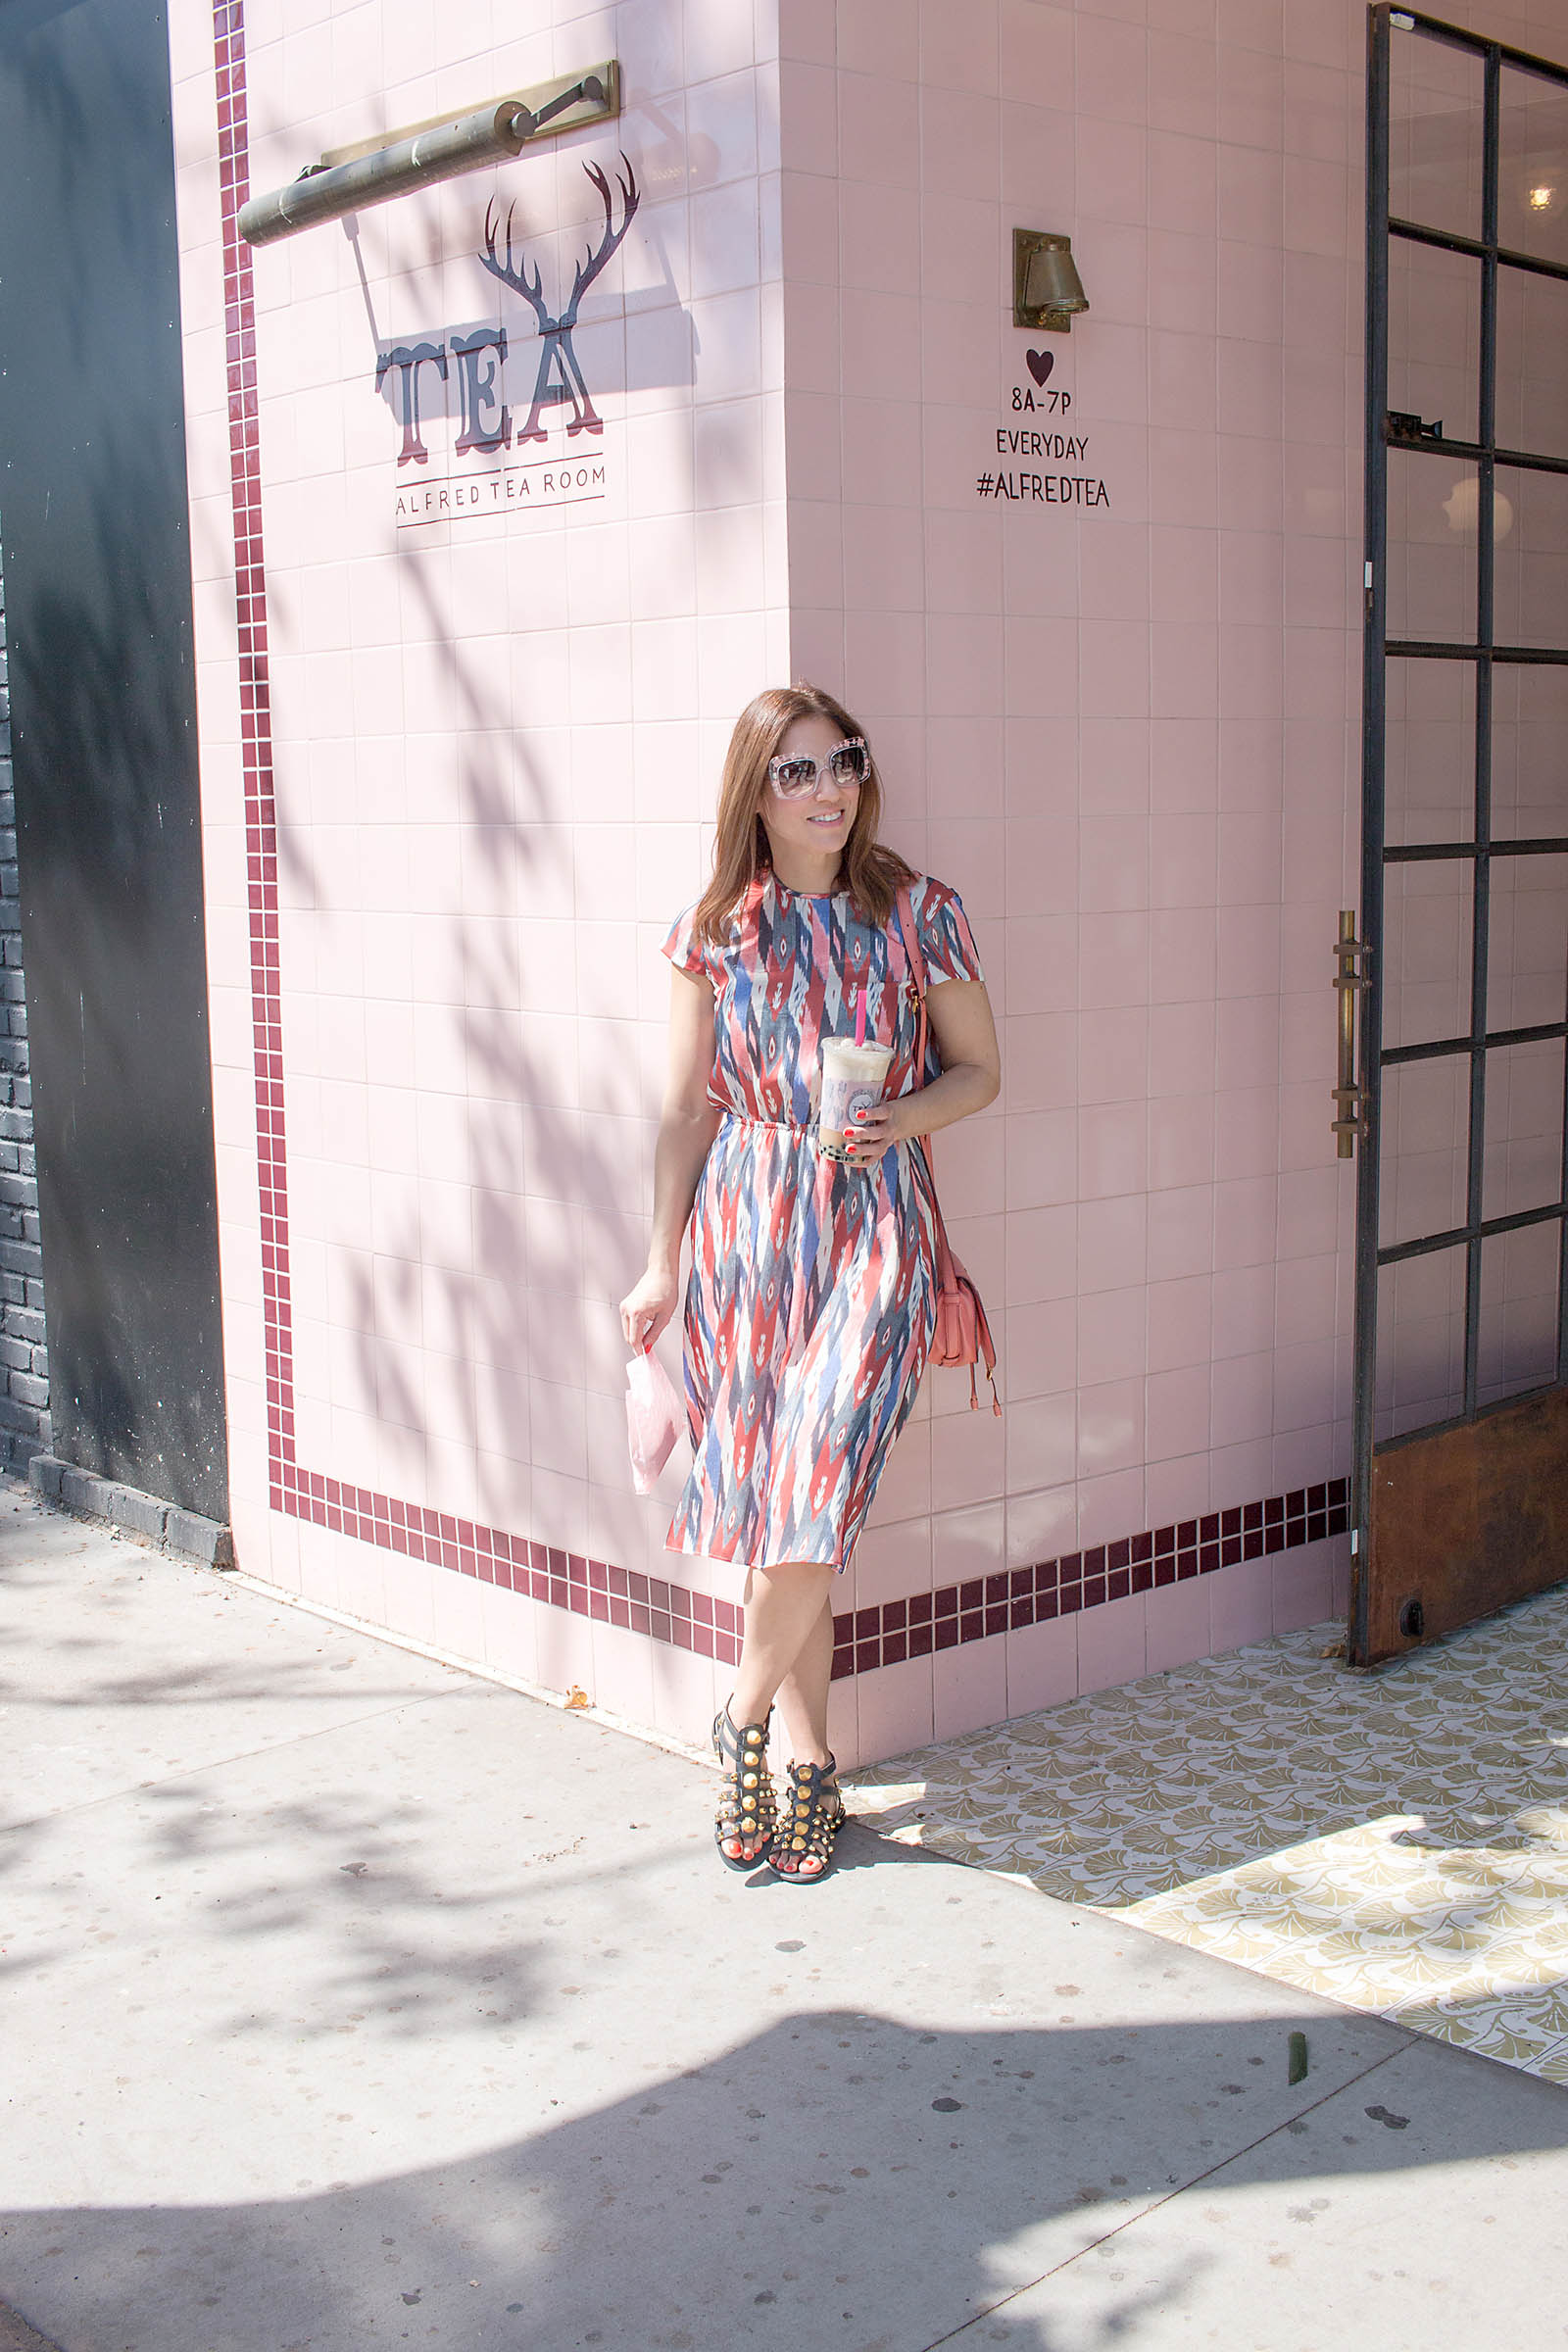 Anna Roufos Sosa of Noir Friday wearing Isabel Marant while visiting Alfred Tea Room in LA.